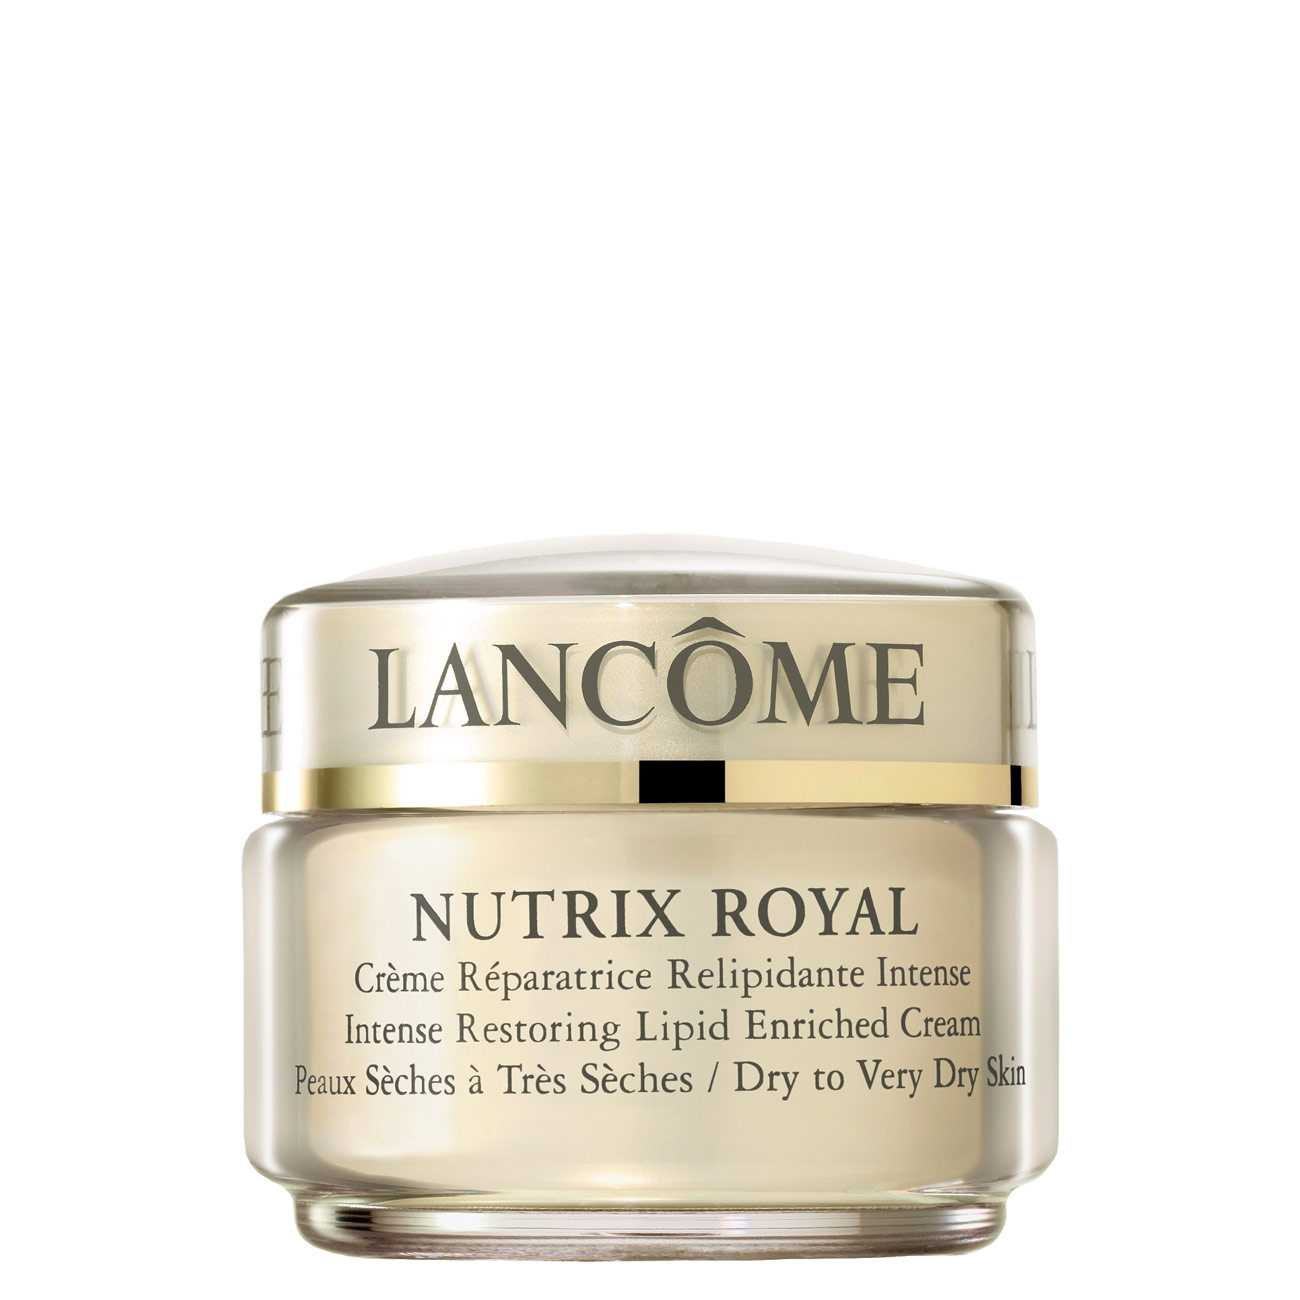 Nutrix Royal 50 Ml Lancôme imagine 2021 bestvalue.eu